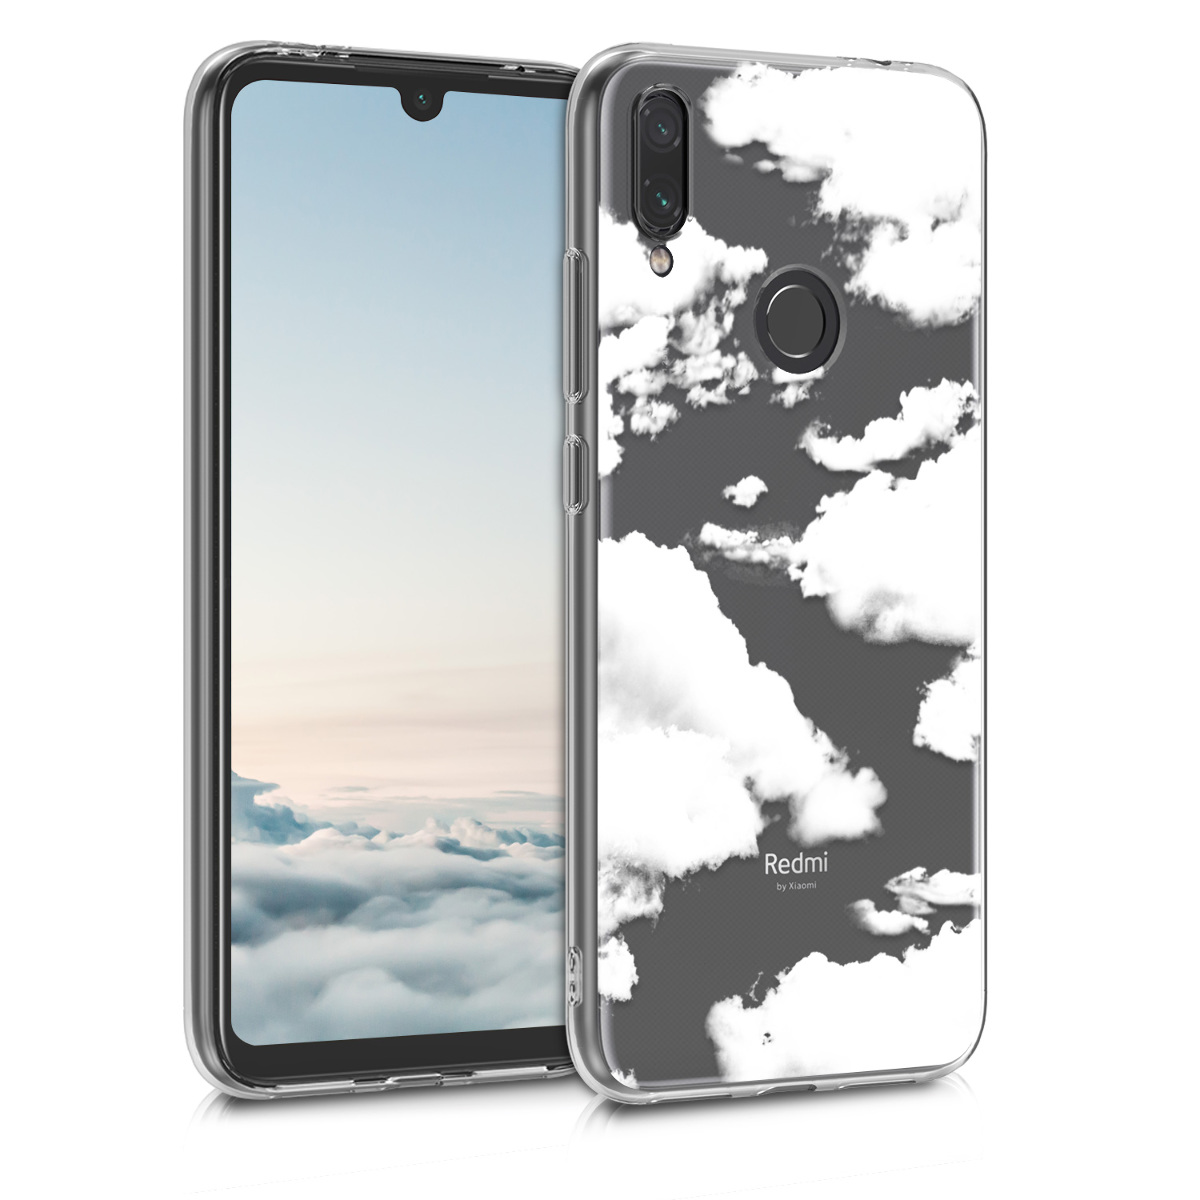 KW Θήκη Σιλικόνης Xiaomi Redmi Note 7 / Note 7 Pro - Bunch of Clouds - White / Transparent (48156.09)